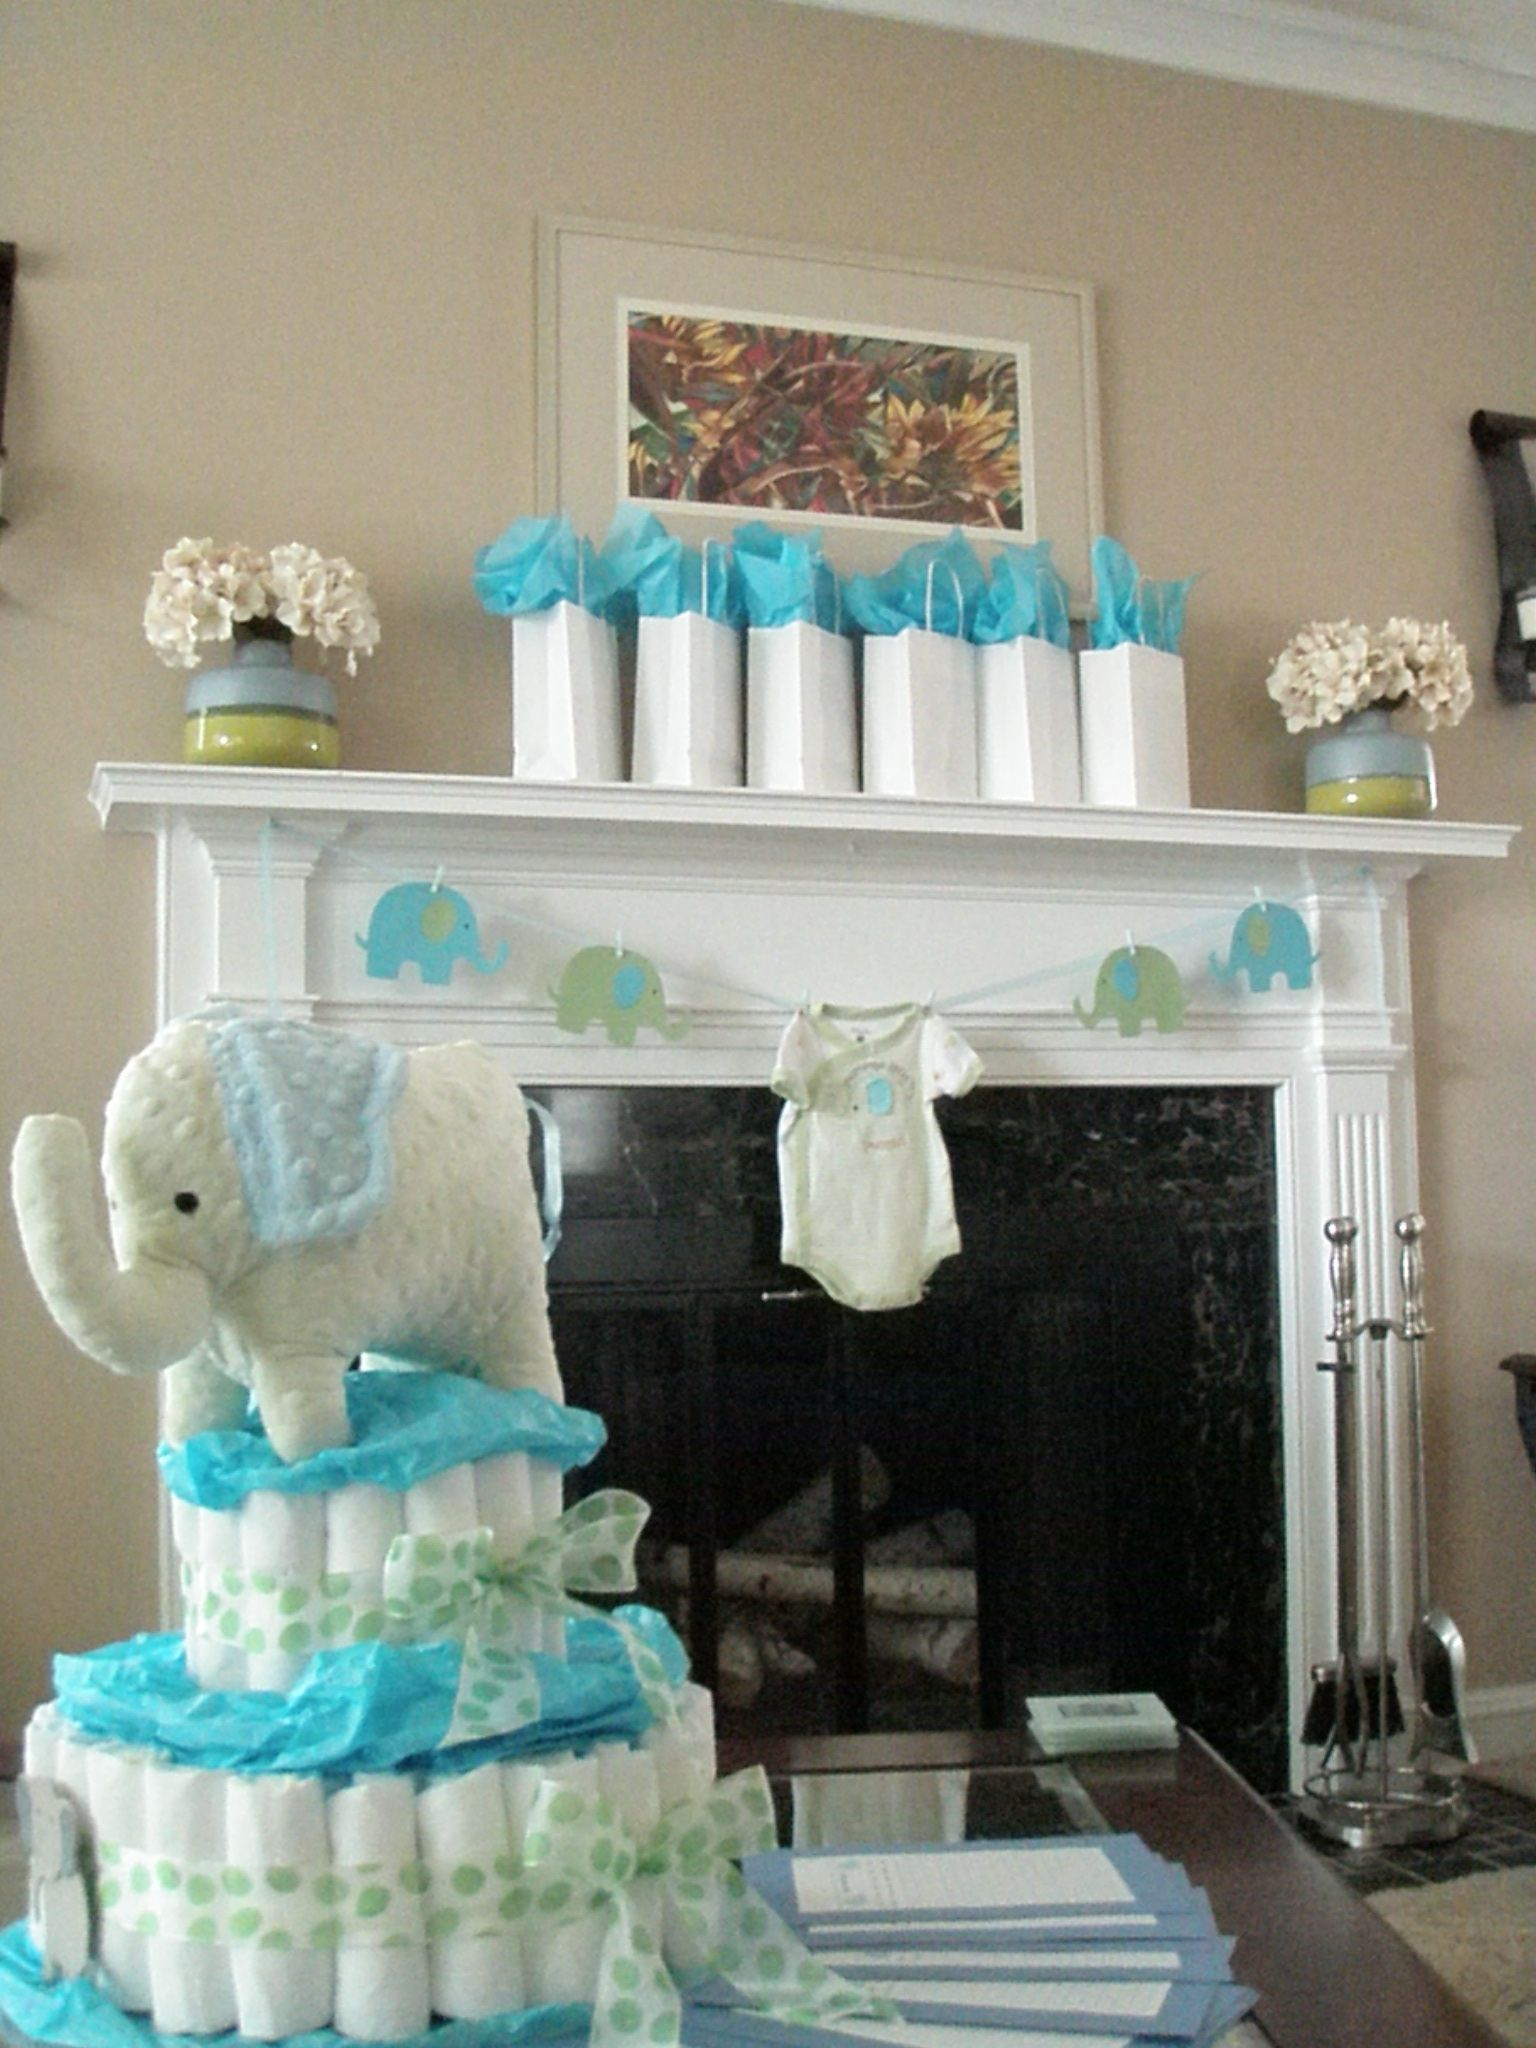 Pin By Jaclyn North On Elephant Baby Shower Ideas Baby Shower Decorations For Boys Elephant Baby Shower Decorations Elephant Baby Showers